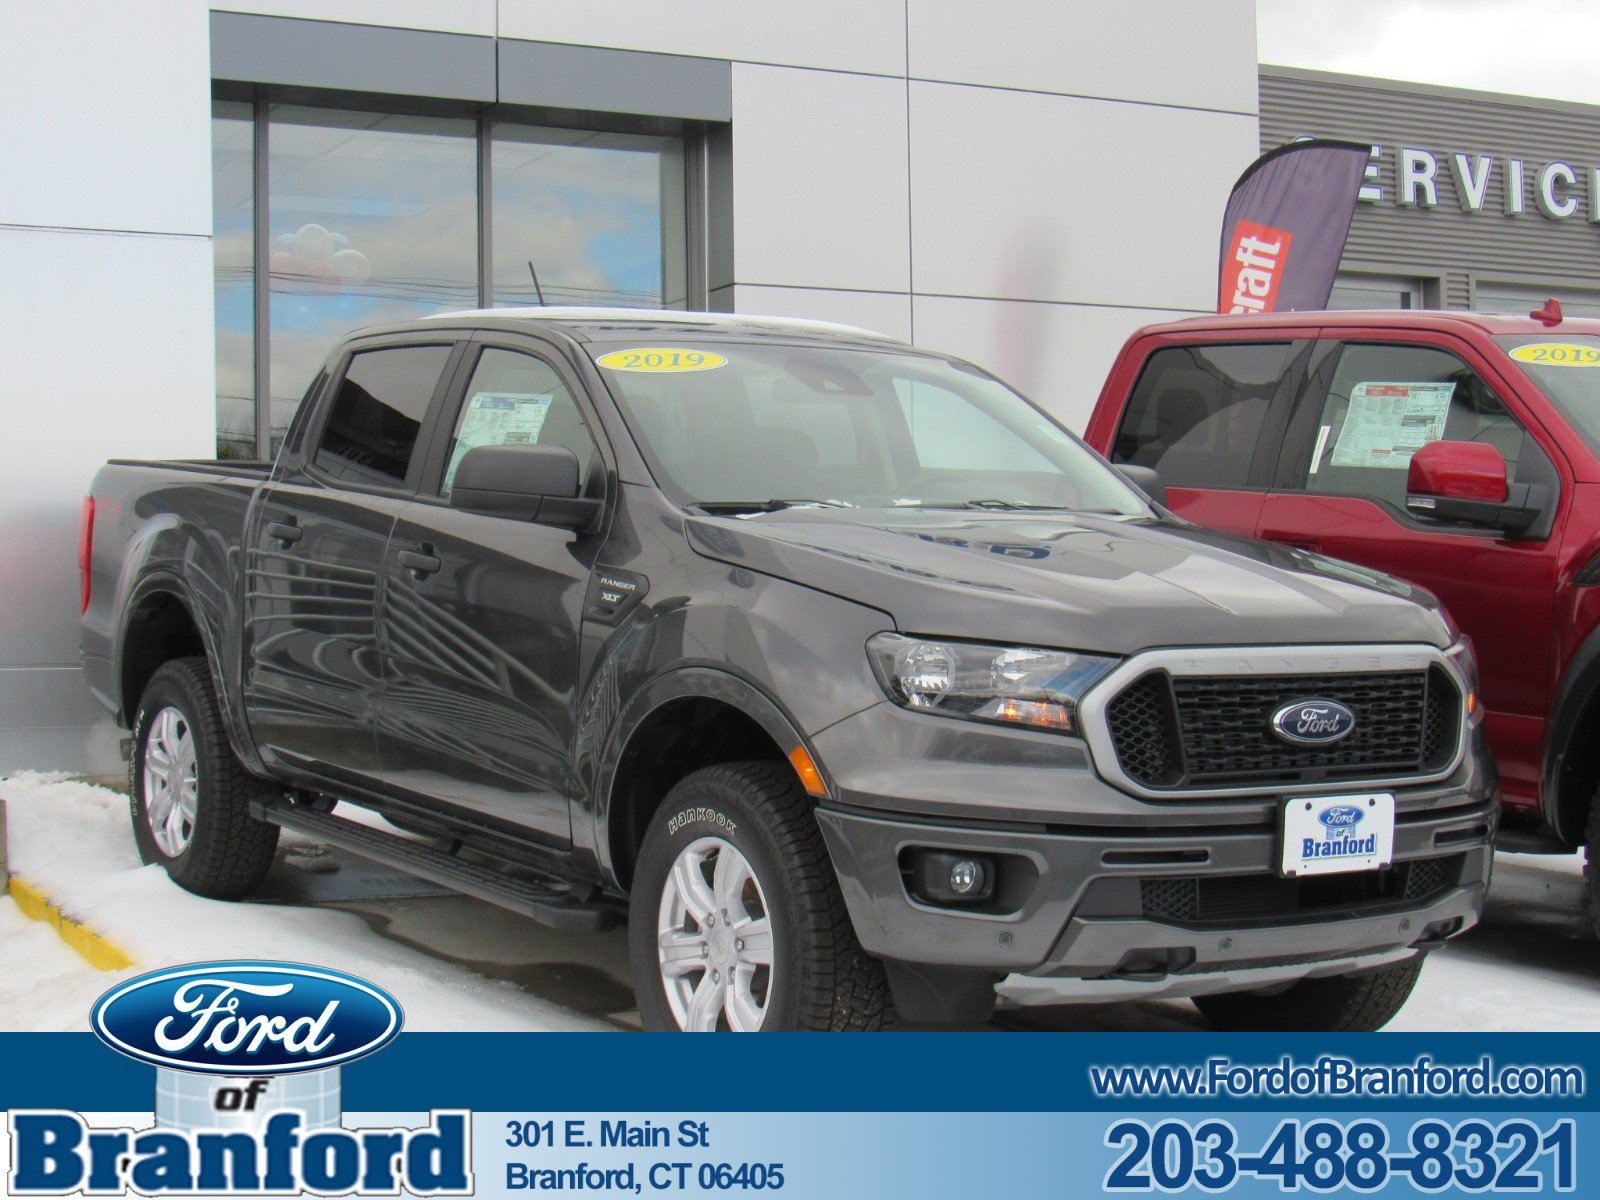 Ford Dealers In Ct >> Ct Ford Dealer Serving New Haven Bridgeport Branford Ford Of